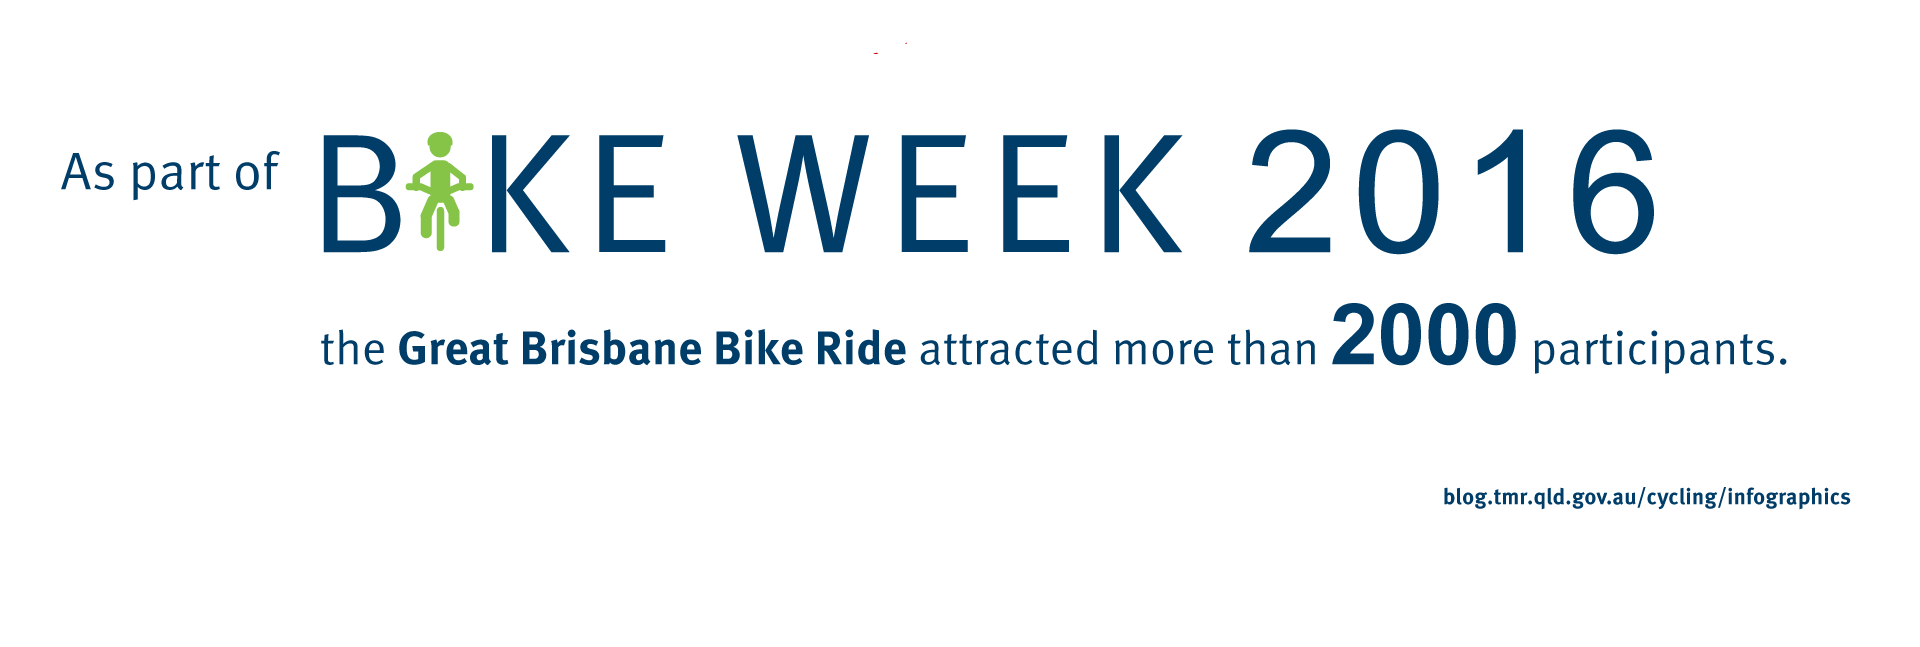 As part of Bike Week 2016 the Great Brisbane Bike Ride attracted more than 2000 participants.